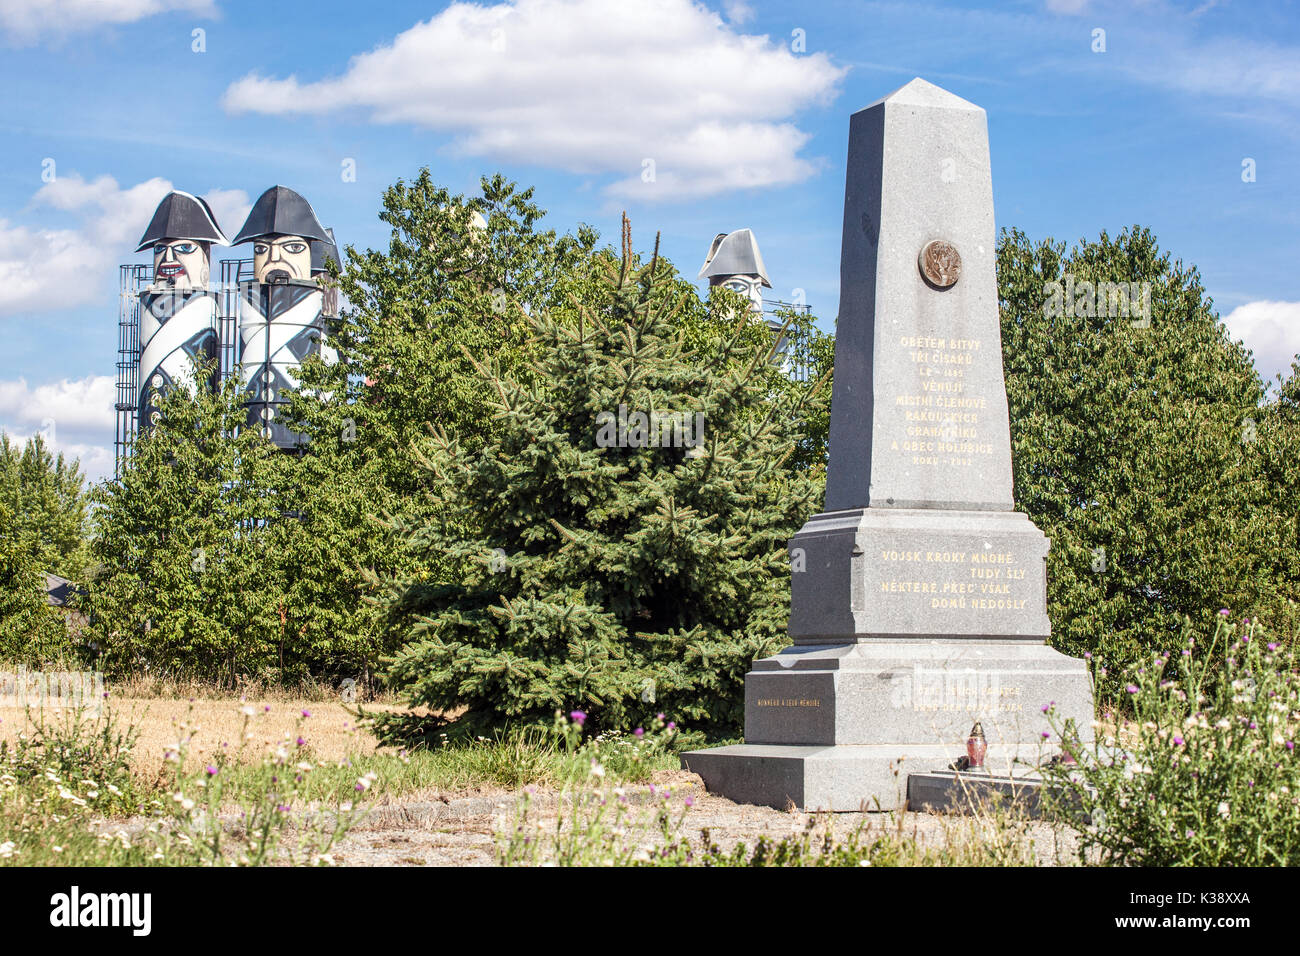 Austerlitz battlefield near the town of Holubice reminds French troops with cannon, Moravia, Czech Republic - Stock Image